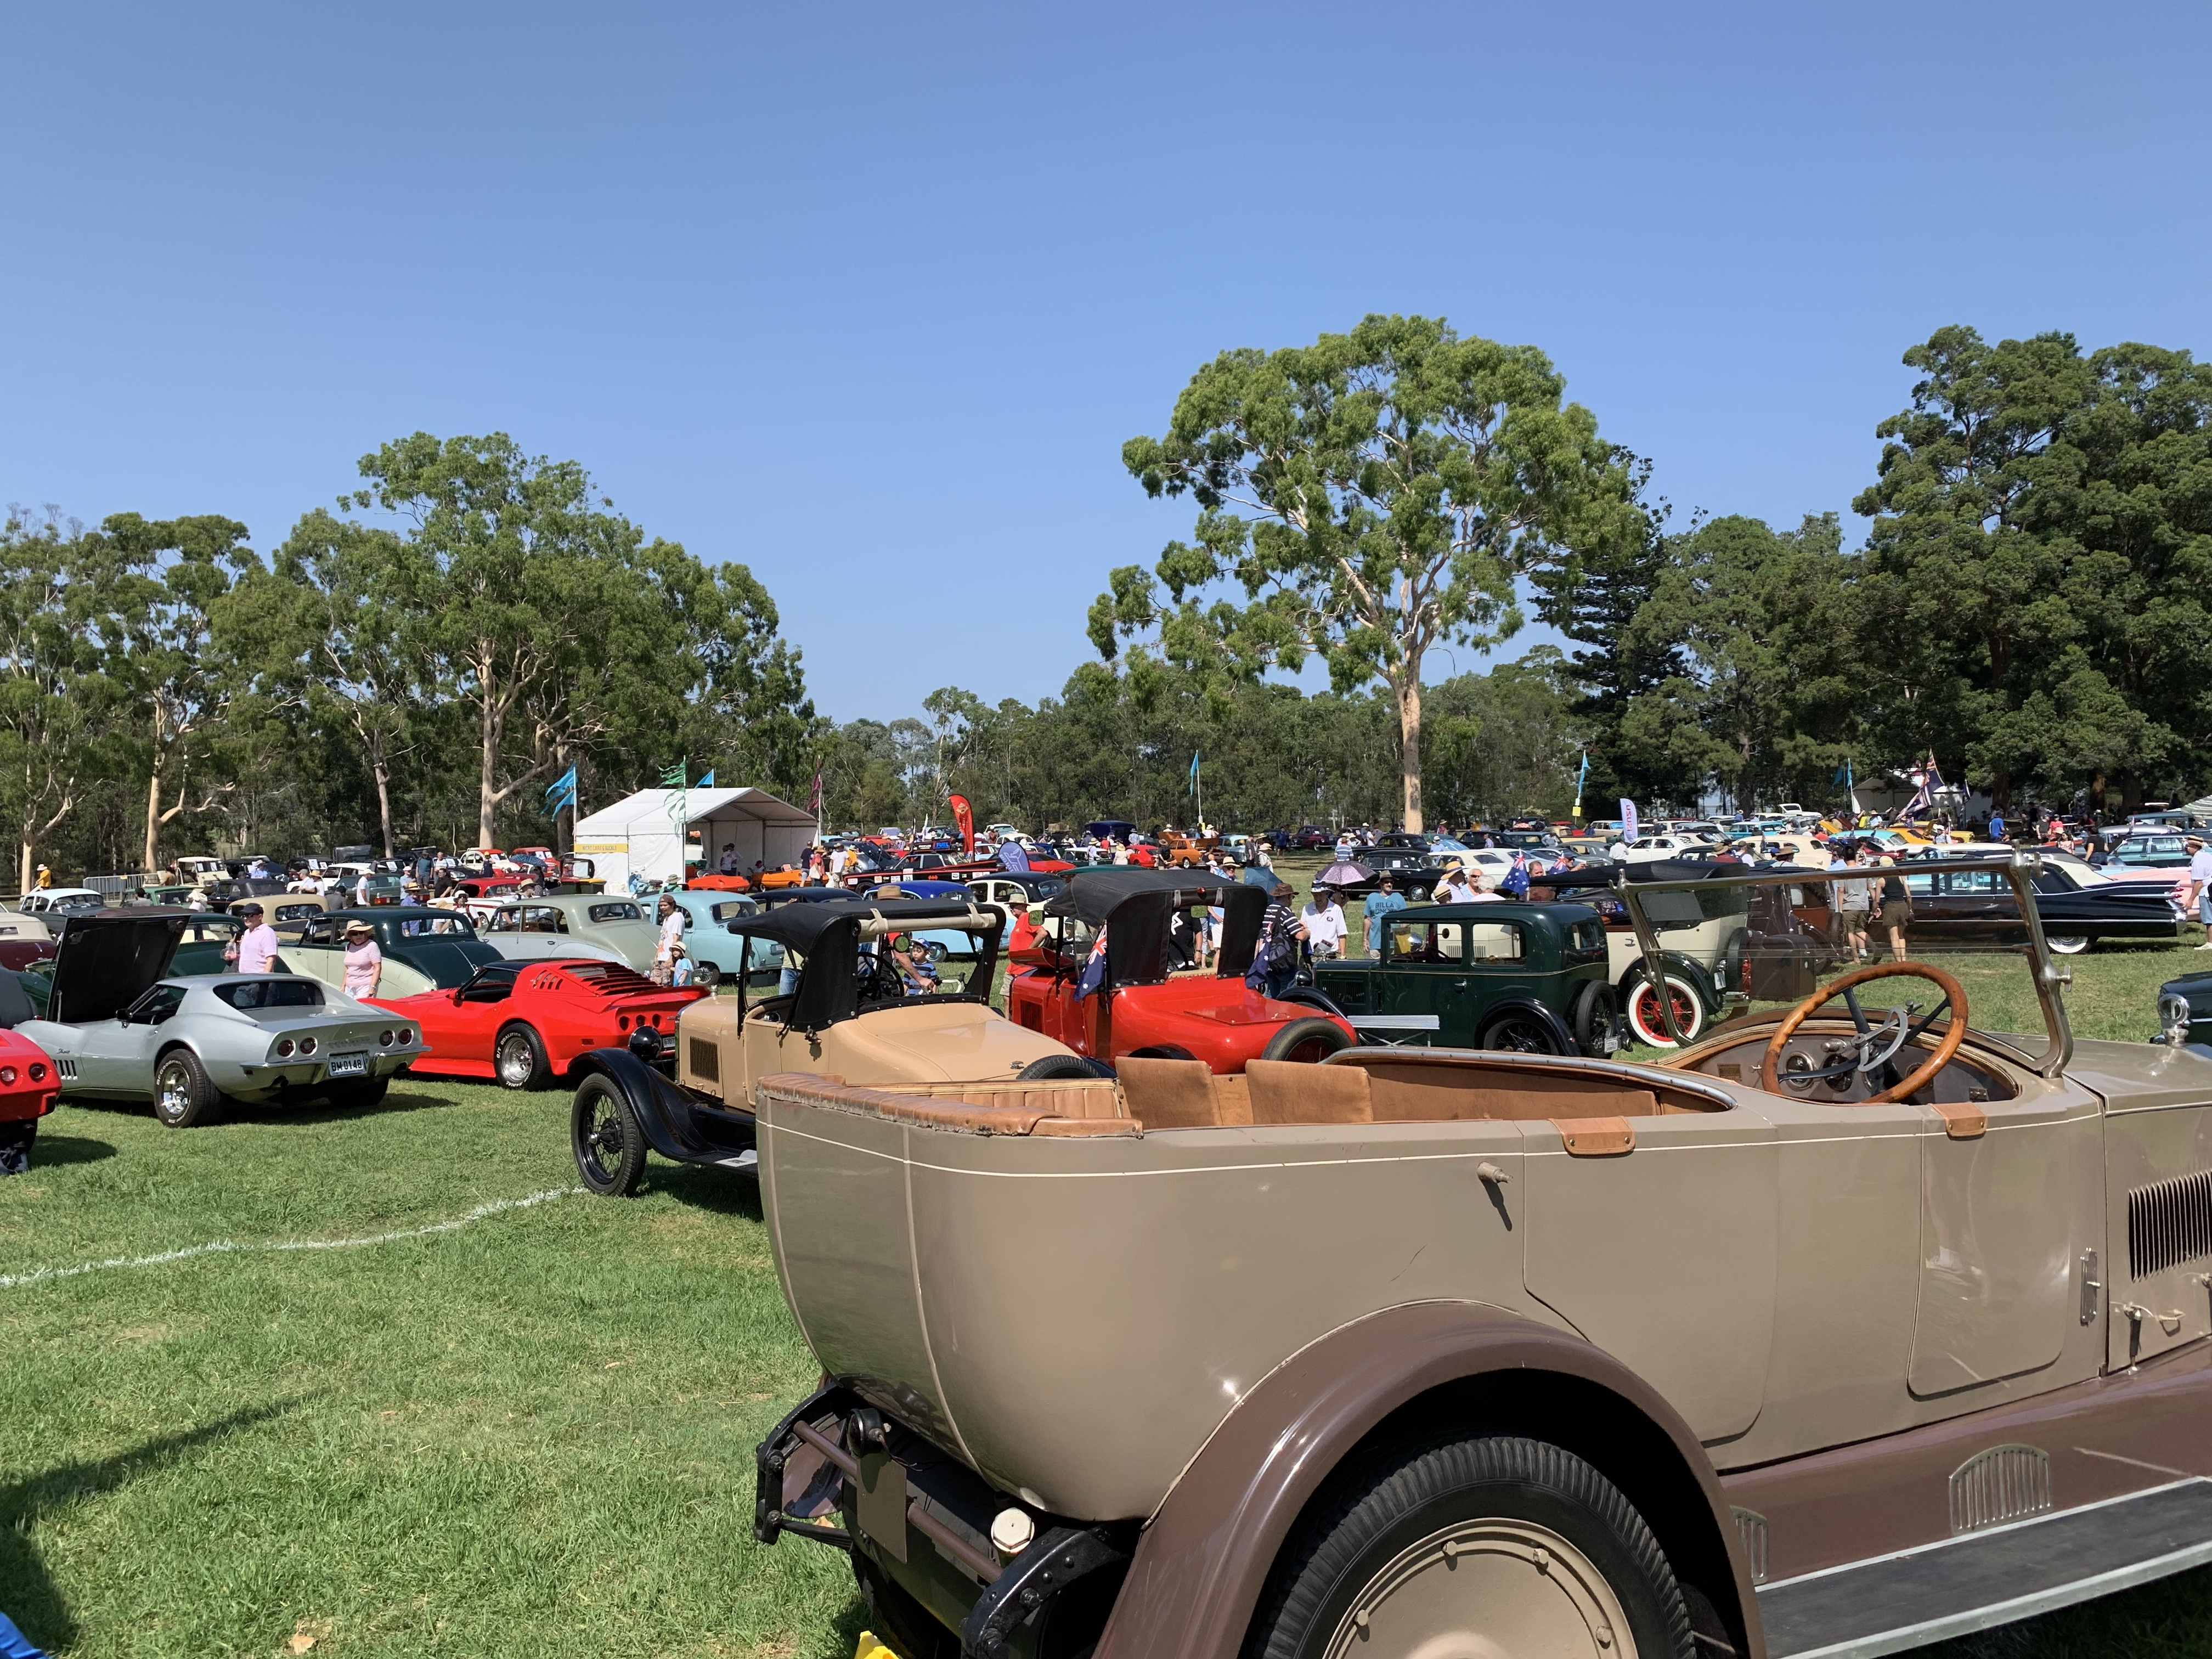 A light and dark brown classic car is at the bottom right hand side of the photo. Behind it are rows of multicoloured cars parked on a grass field. Tall green dress are in the background.